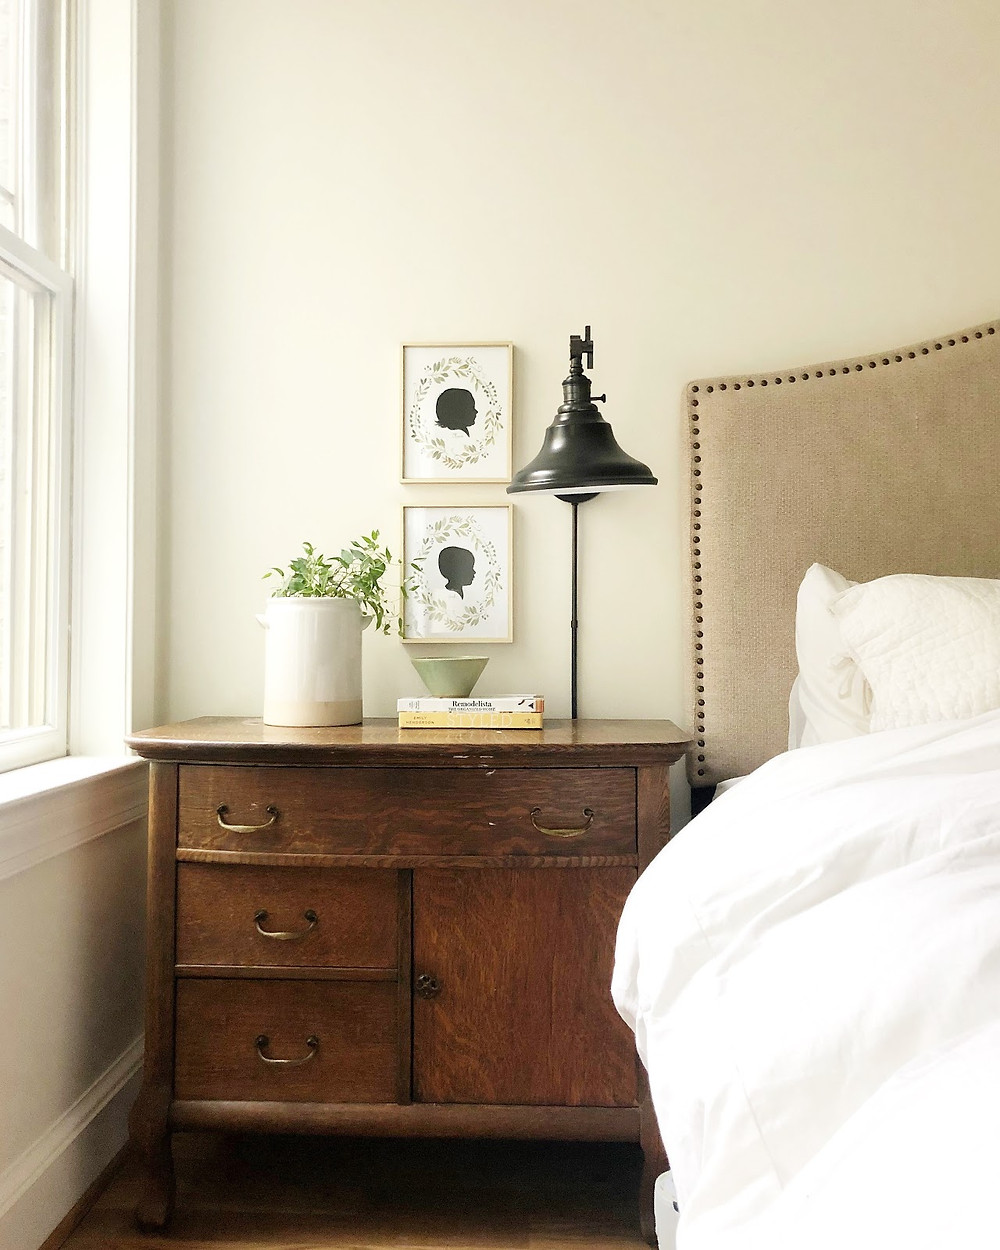 A traditional style vintage nightstand in a neutral, calming master bedroom.